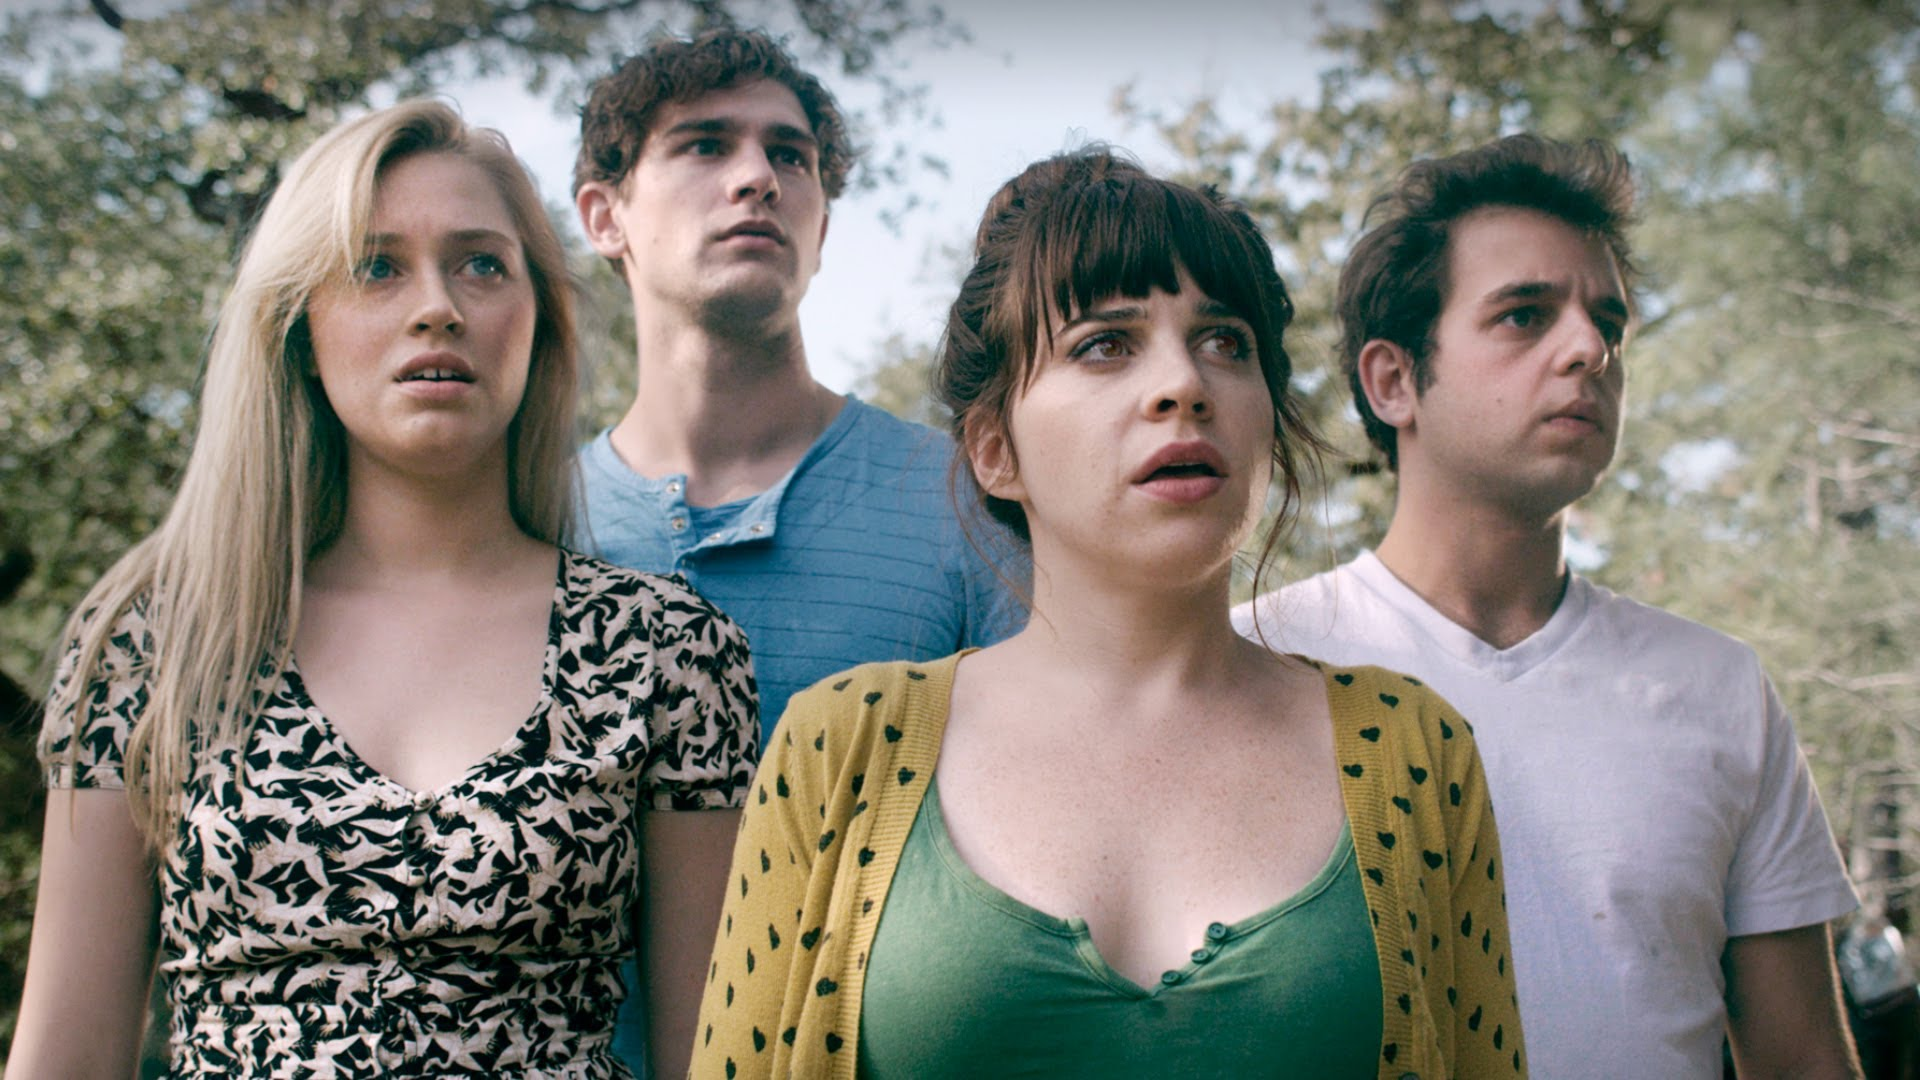 Watch: 'Hell No: The Sensible Horror Film' Where Characters Make Smart Decisions